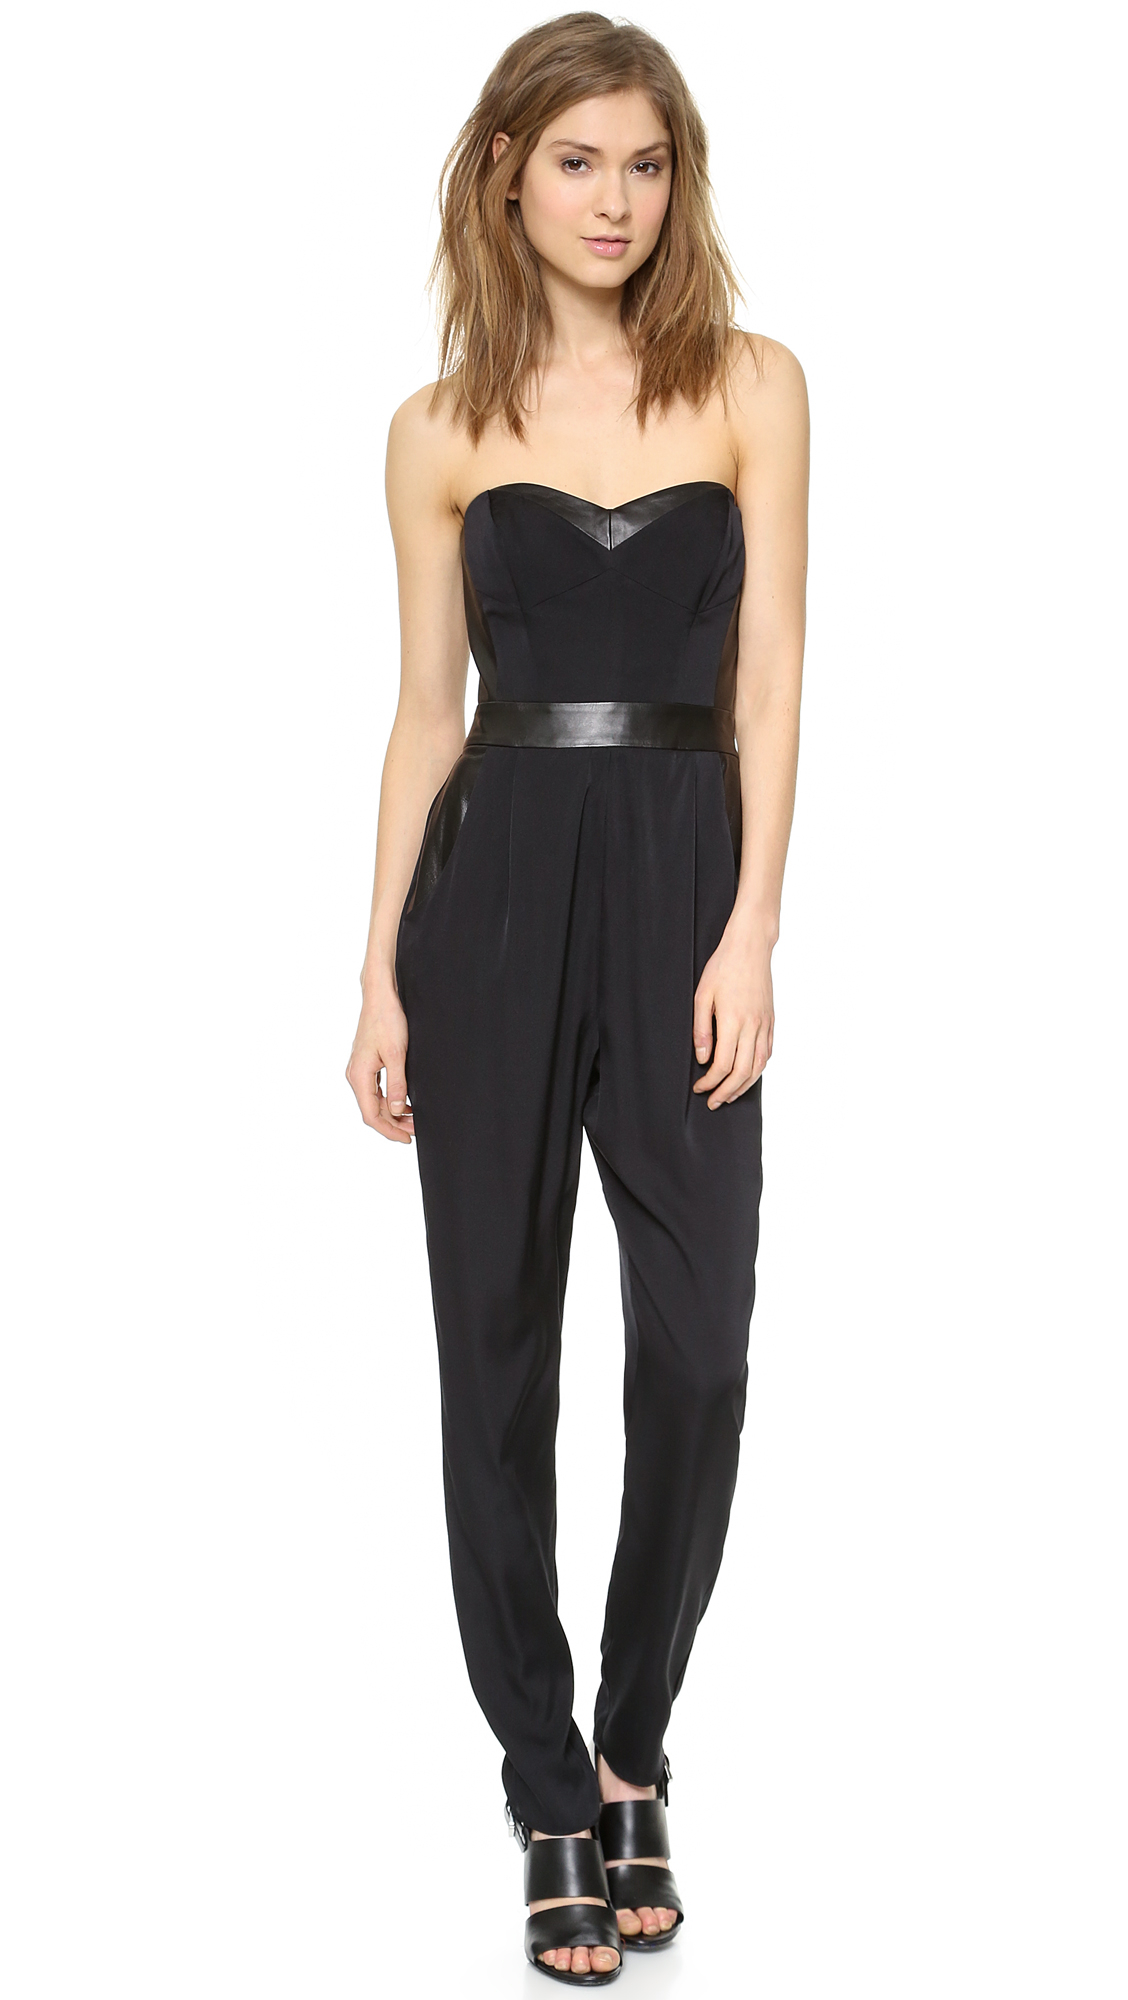 274a7ae74a99 Gallery. Previously sold at  Shopbop · Women s Black Jumpsuits ...